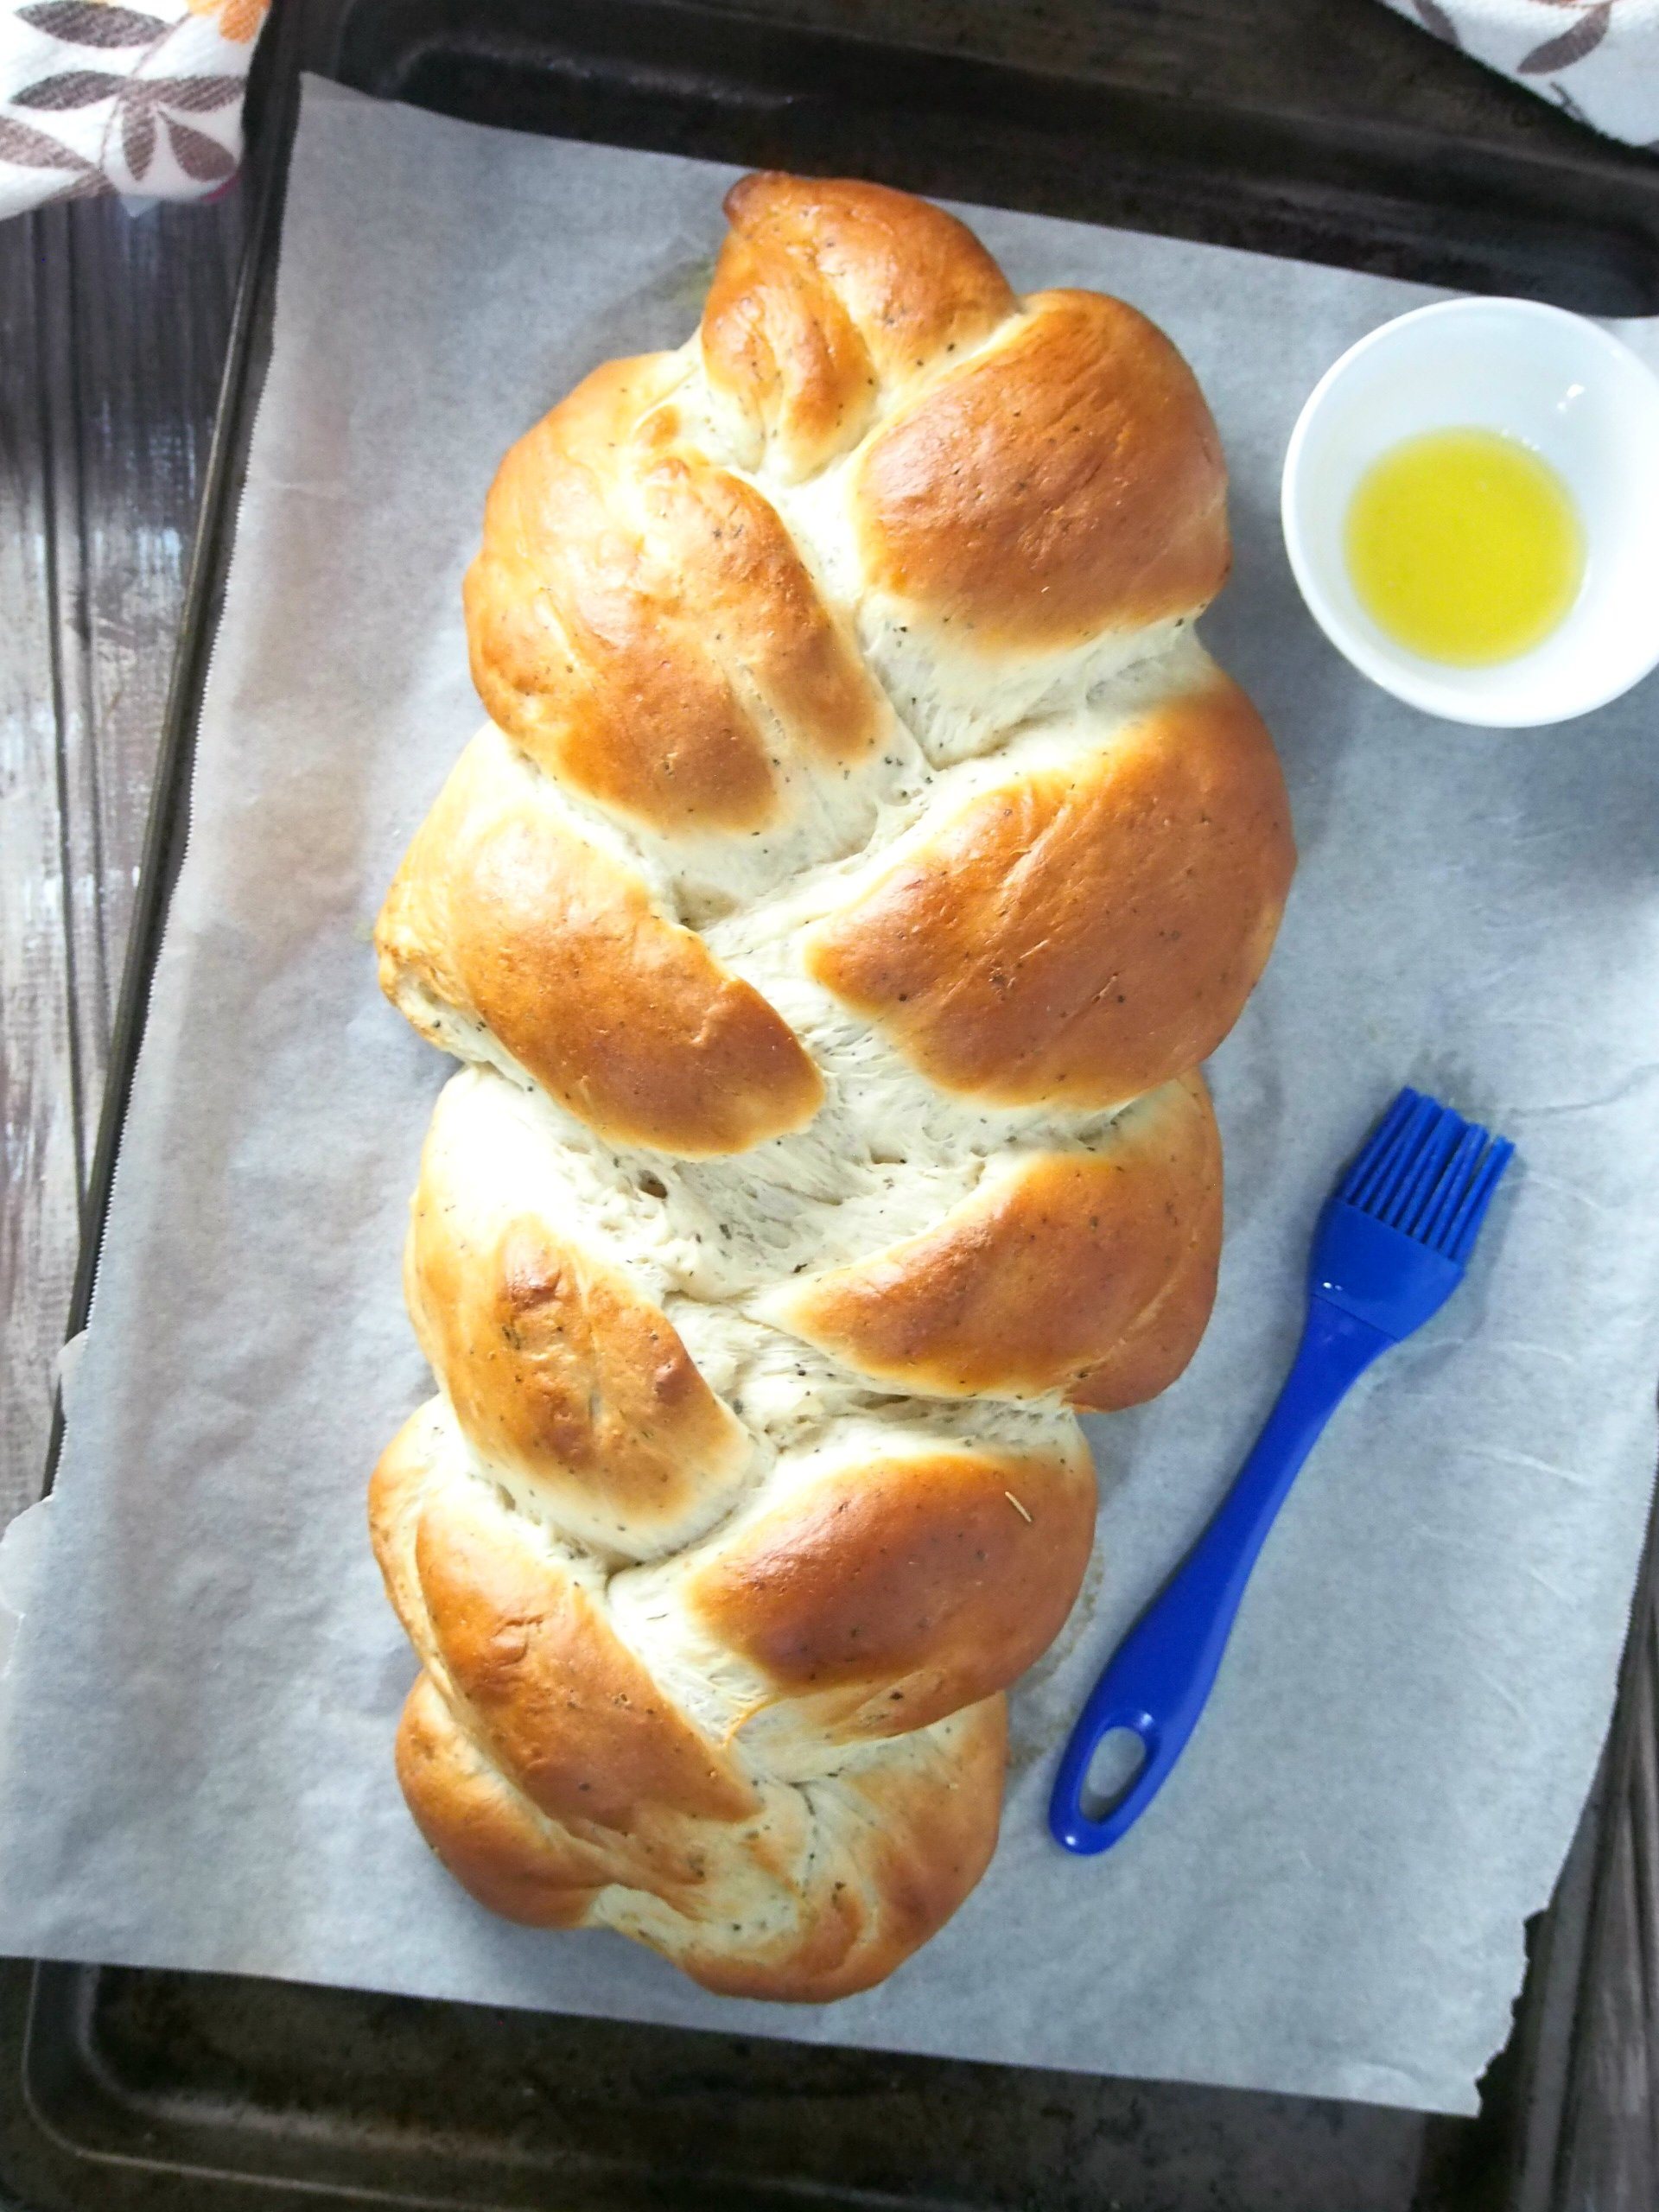 Garlic Herb Bread is a tasty braided loaf that is infused with herbs and full of savory garlic flavor. Serve this as a side along with your meal or alone as a filling snack.